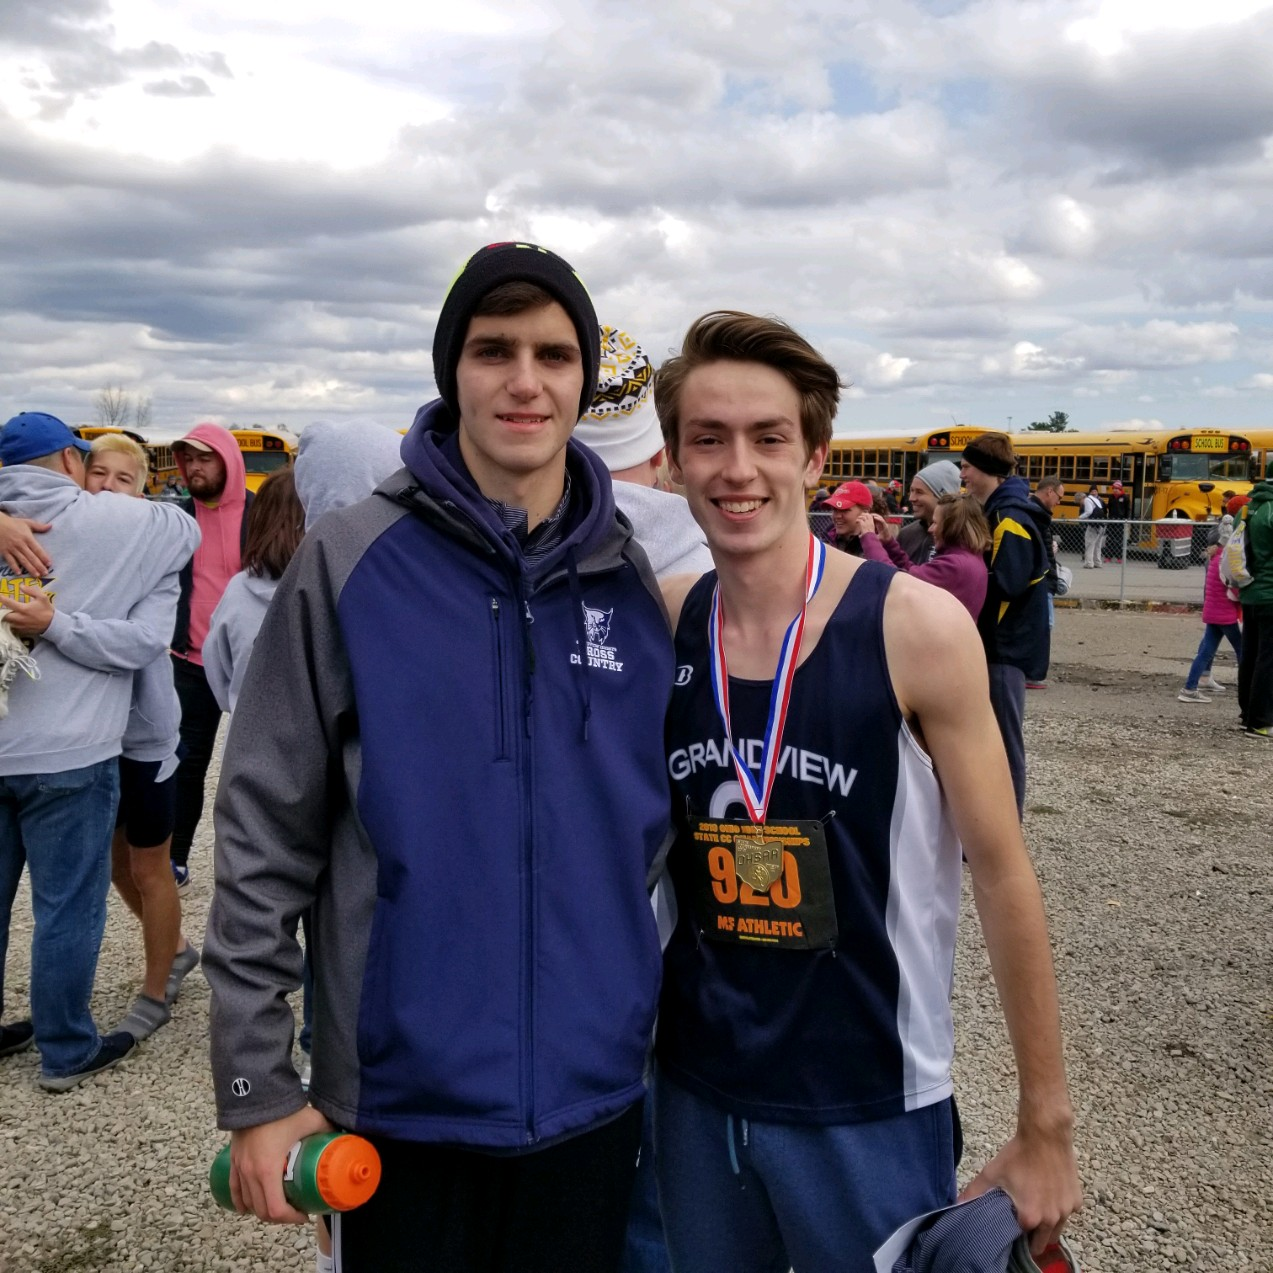 Derek Amicon Wins the XC State Championship (Video Link Inside)